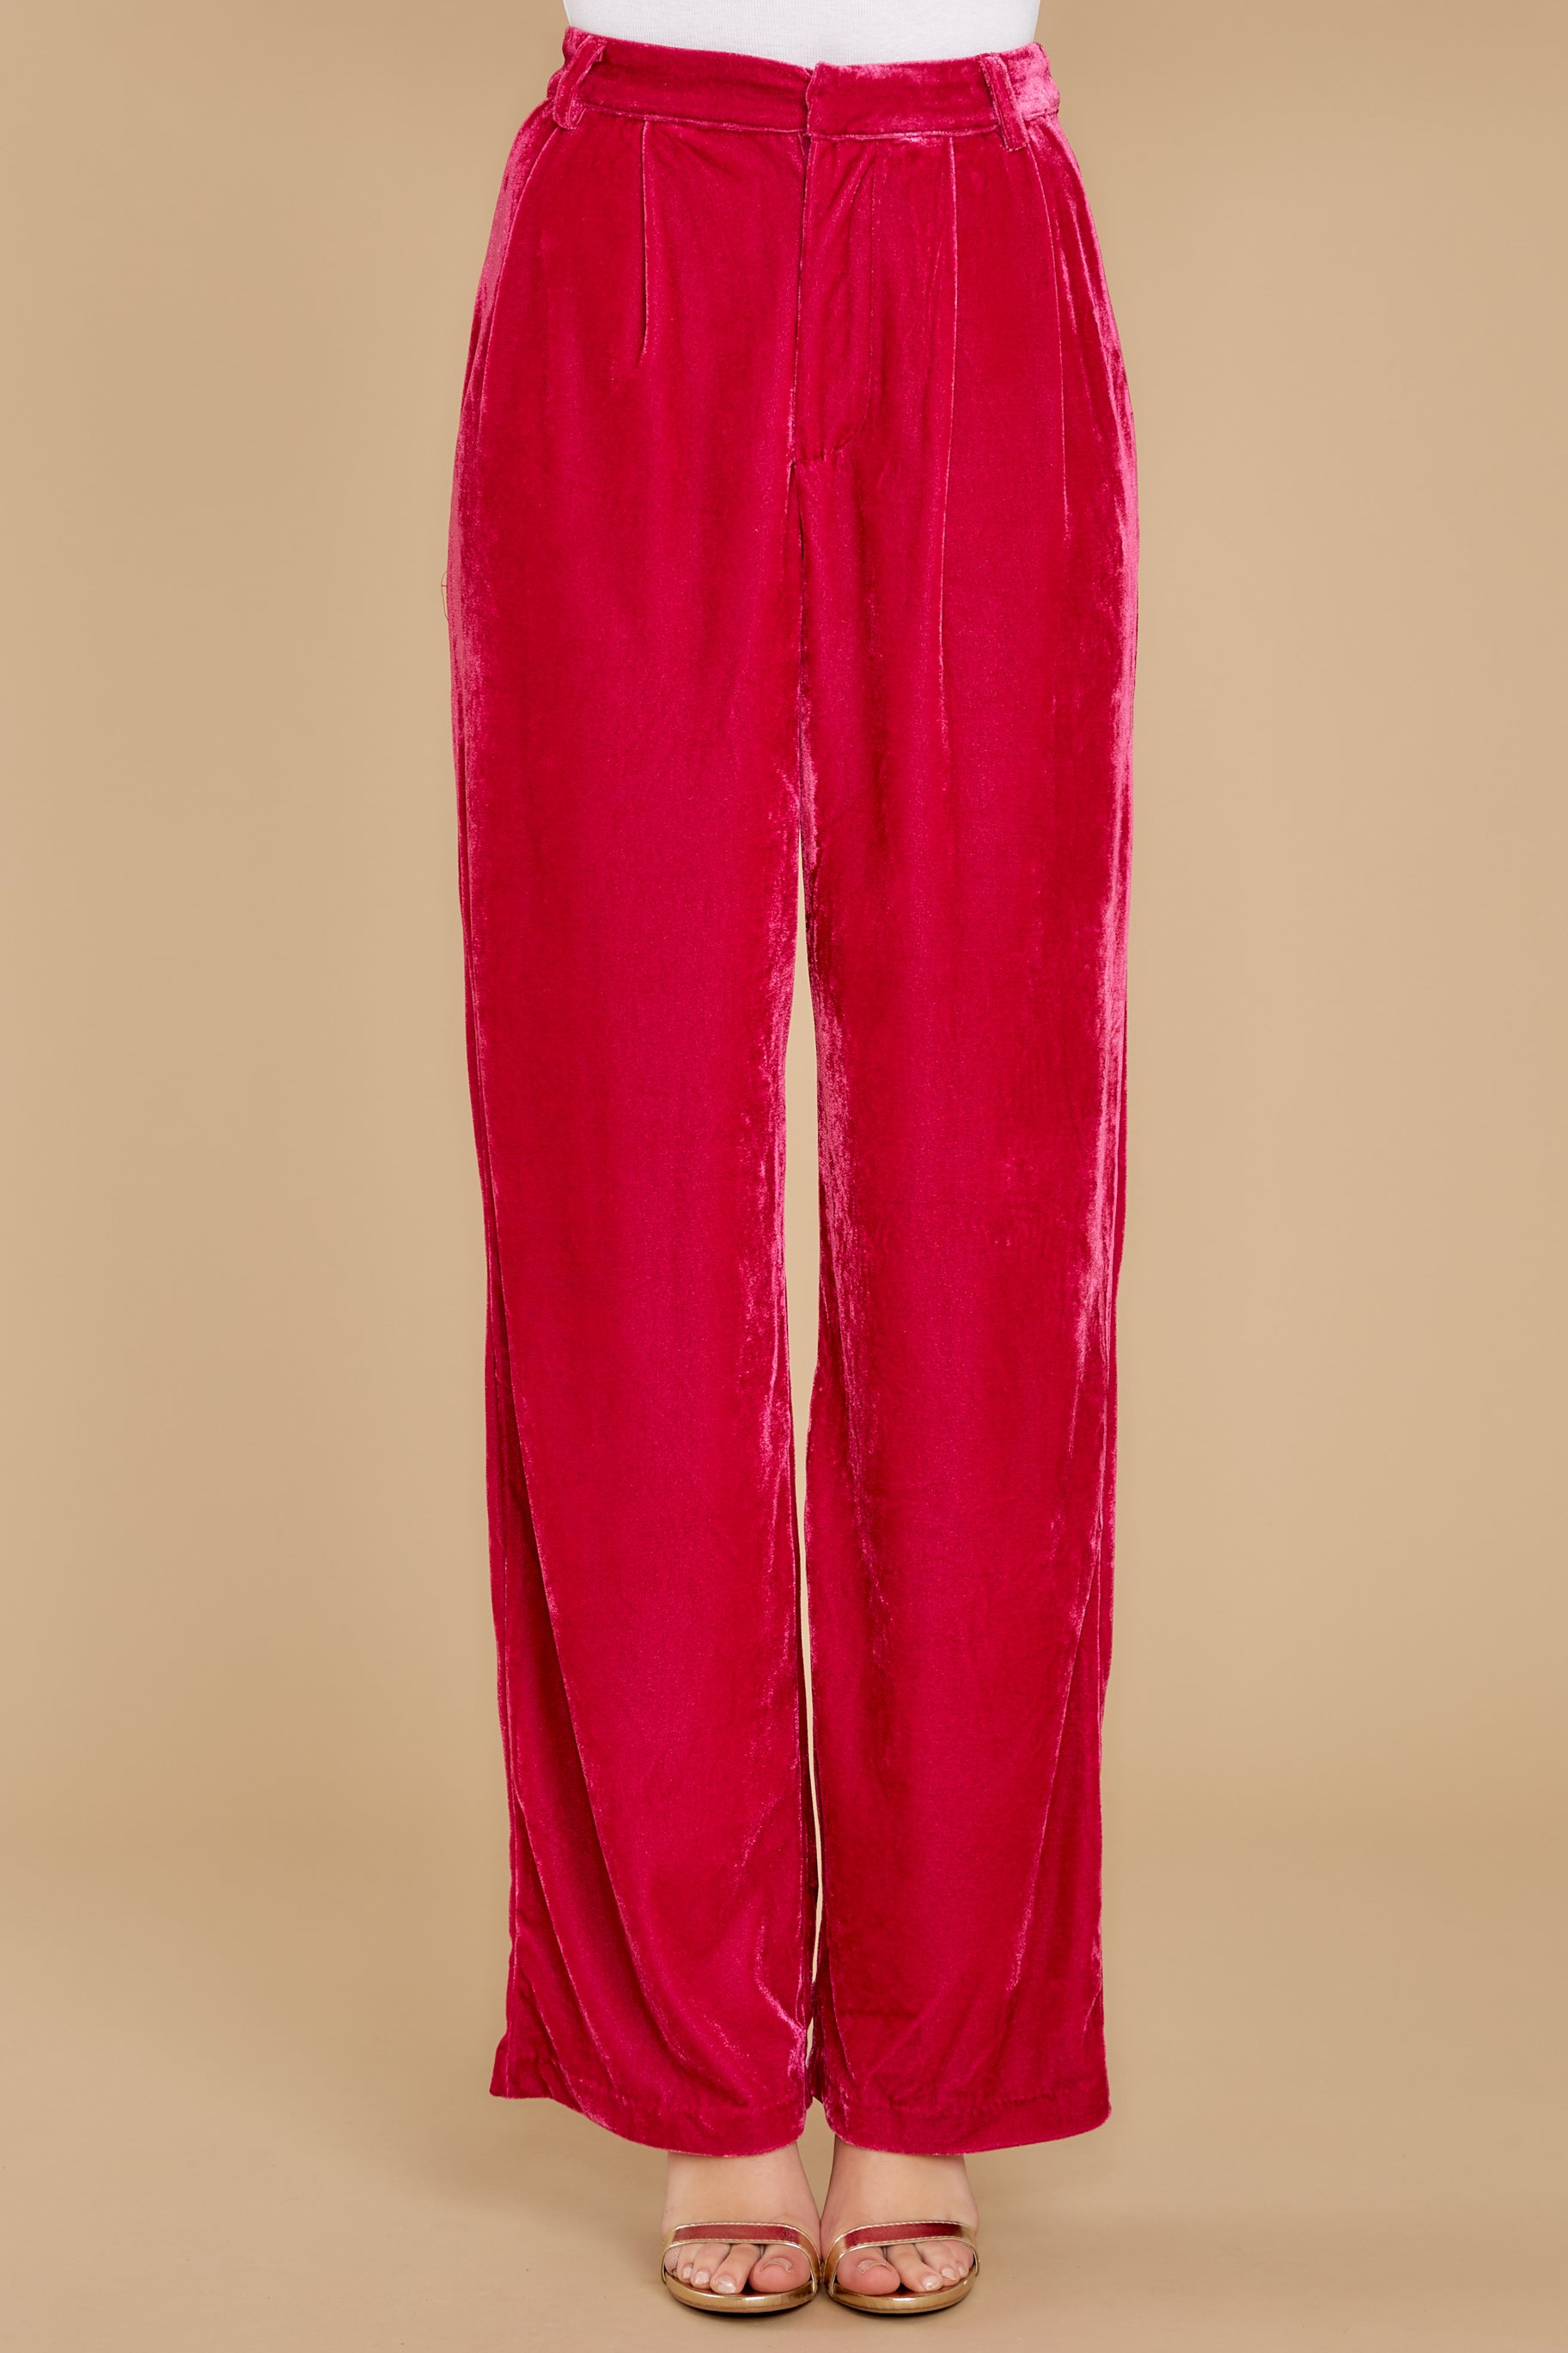 4 One Direction Dark Pink Velour Pants at reddress.com